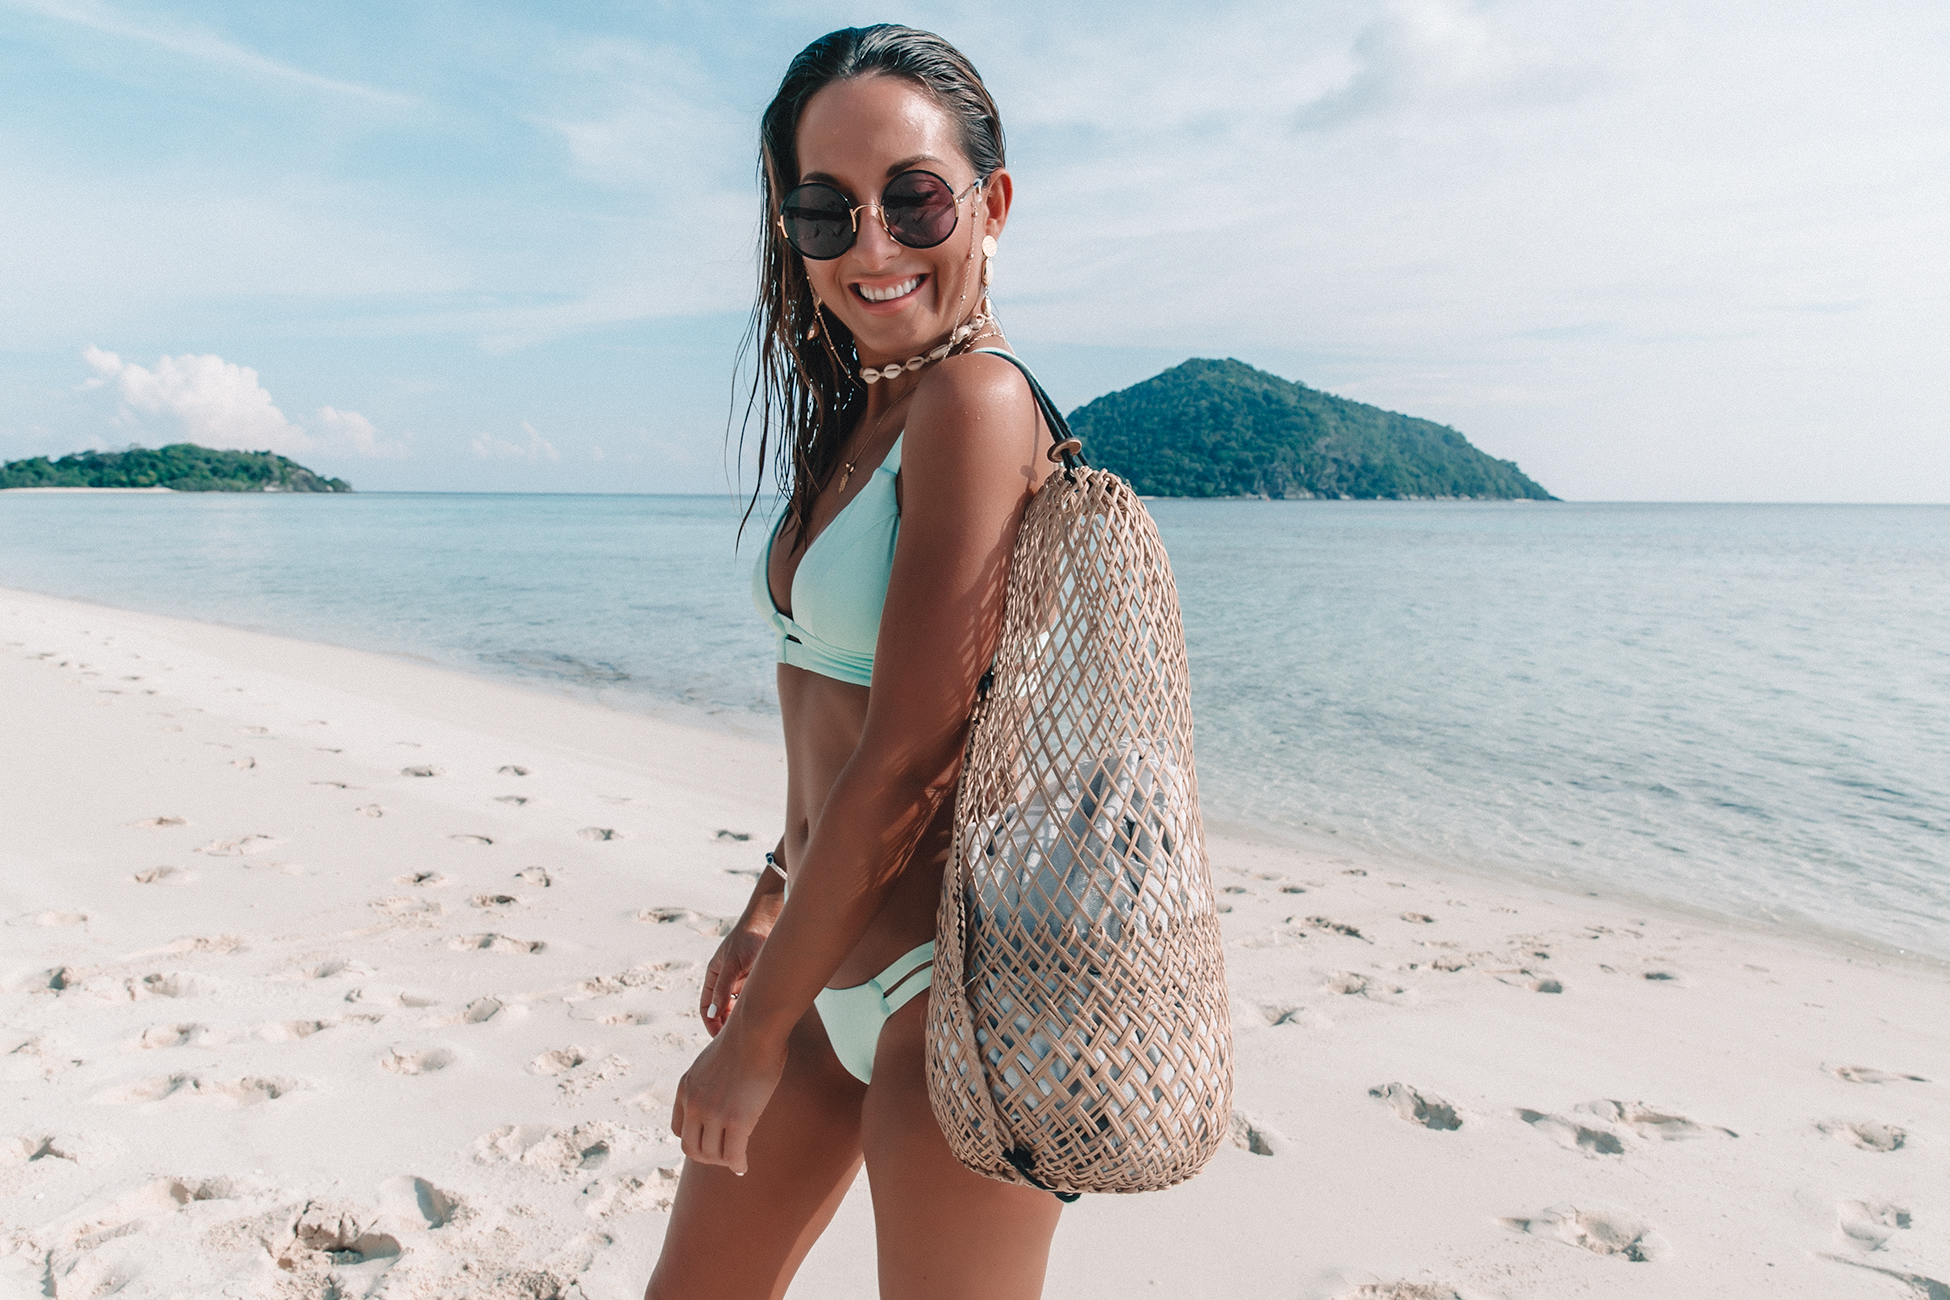 smiling_tanned_woman_sunglasses_holding_wicker_bag_looking_down_at_beach_sanggah_muerba_background